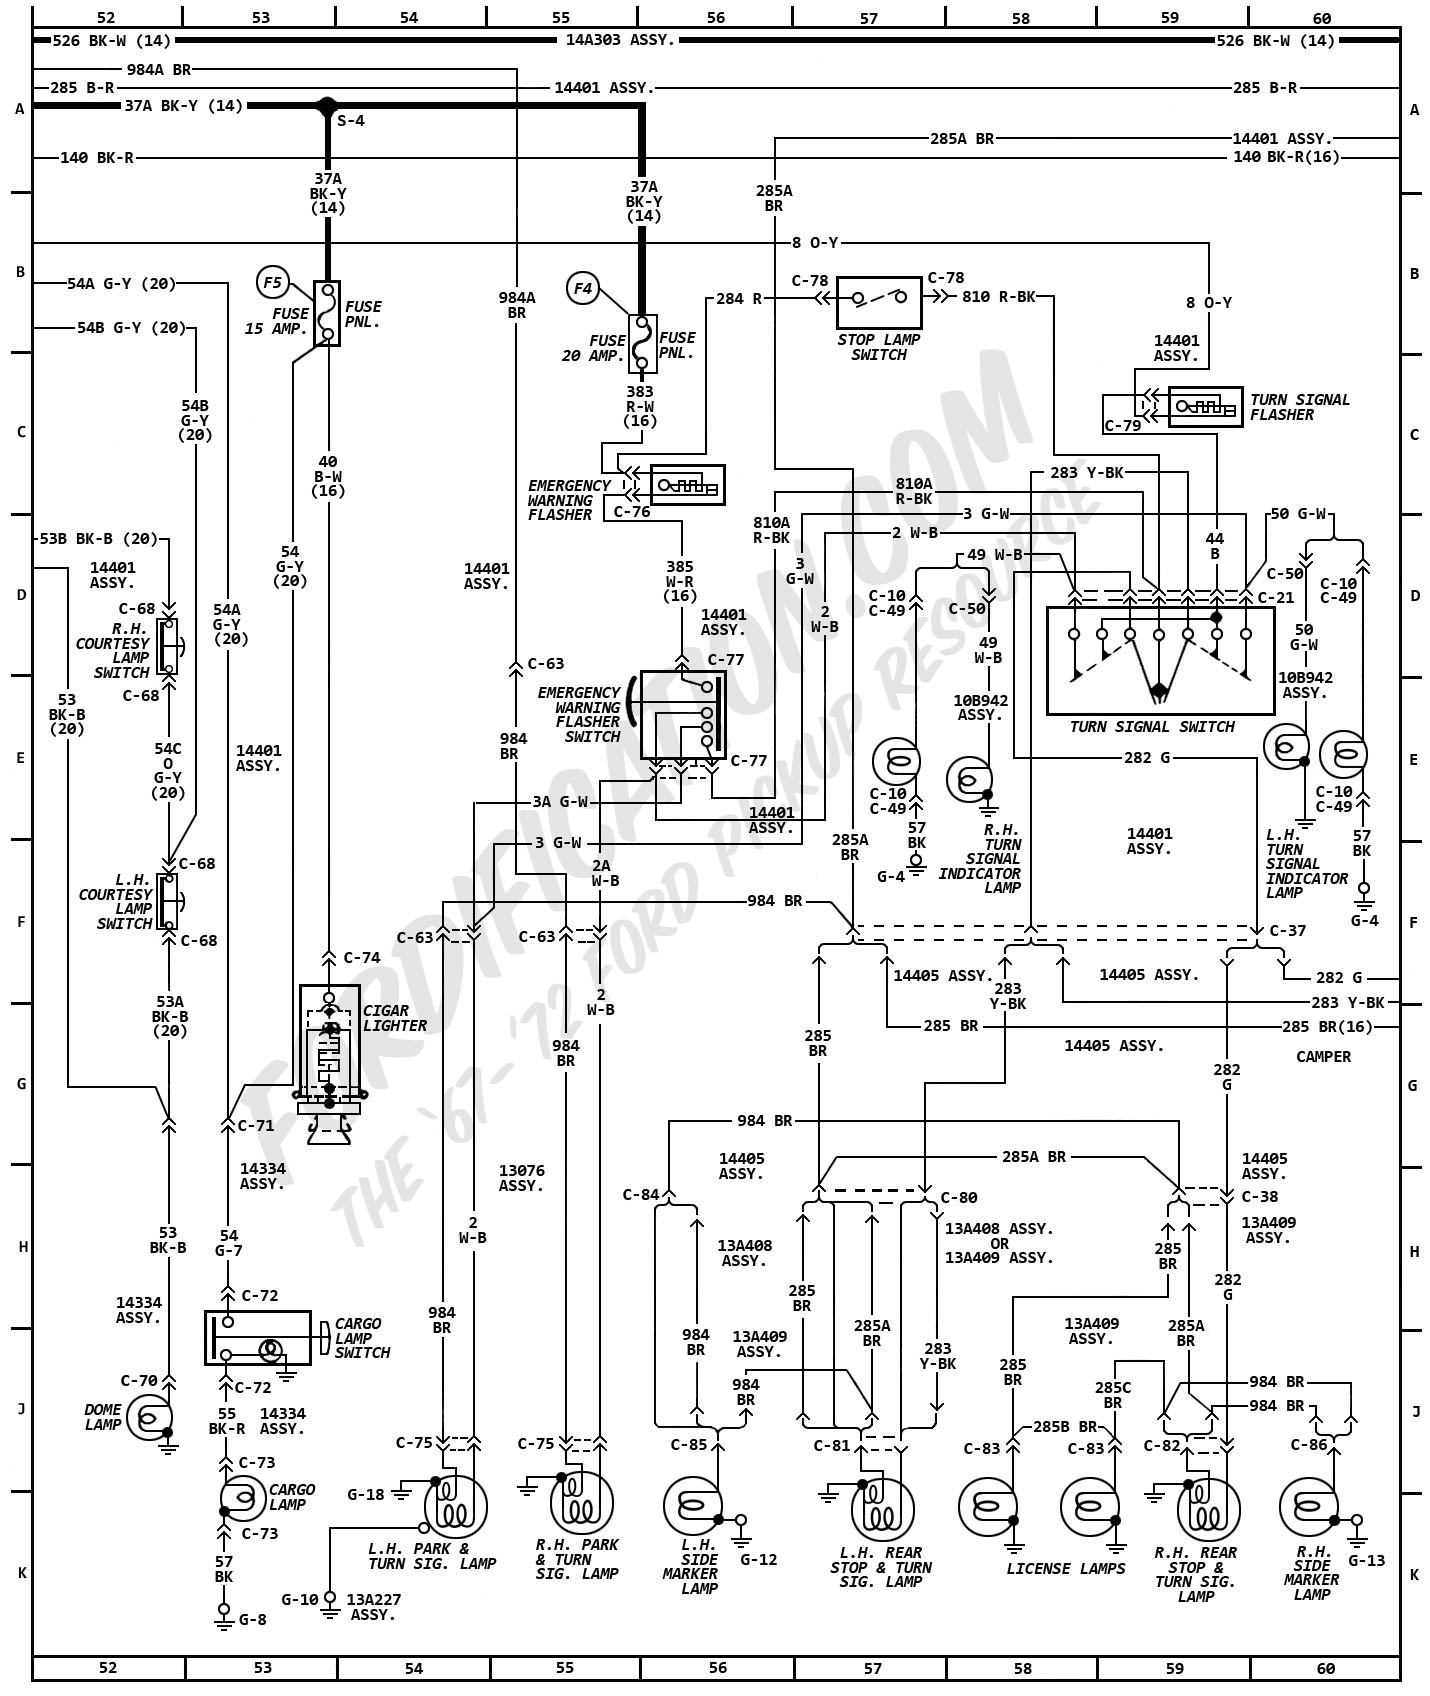 Ford F650 Wiring Schematic Ignition Library Diagram 2001 F 250 Diesel 1931 Model A 1972 F250 Simple Rh David Huggett Co Uk 1969